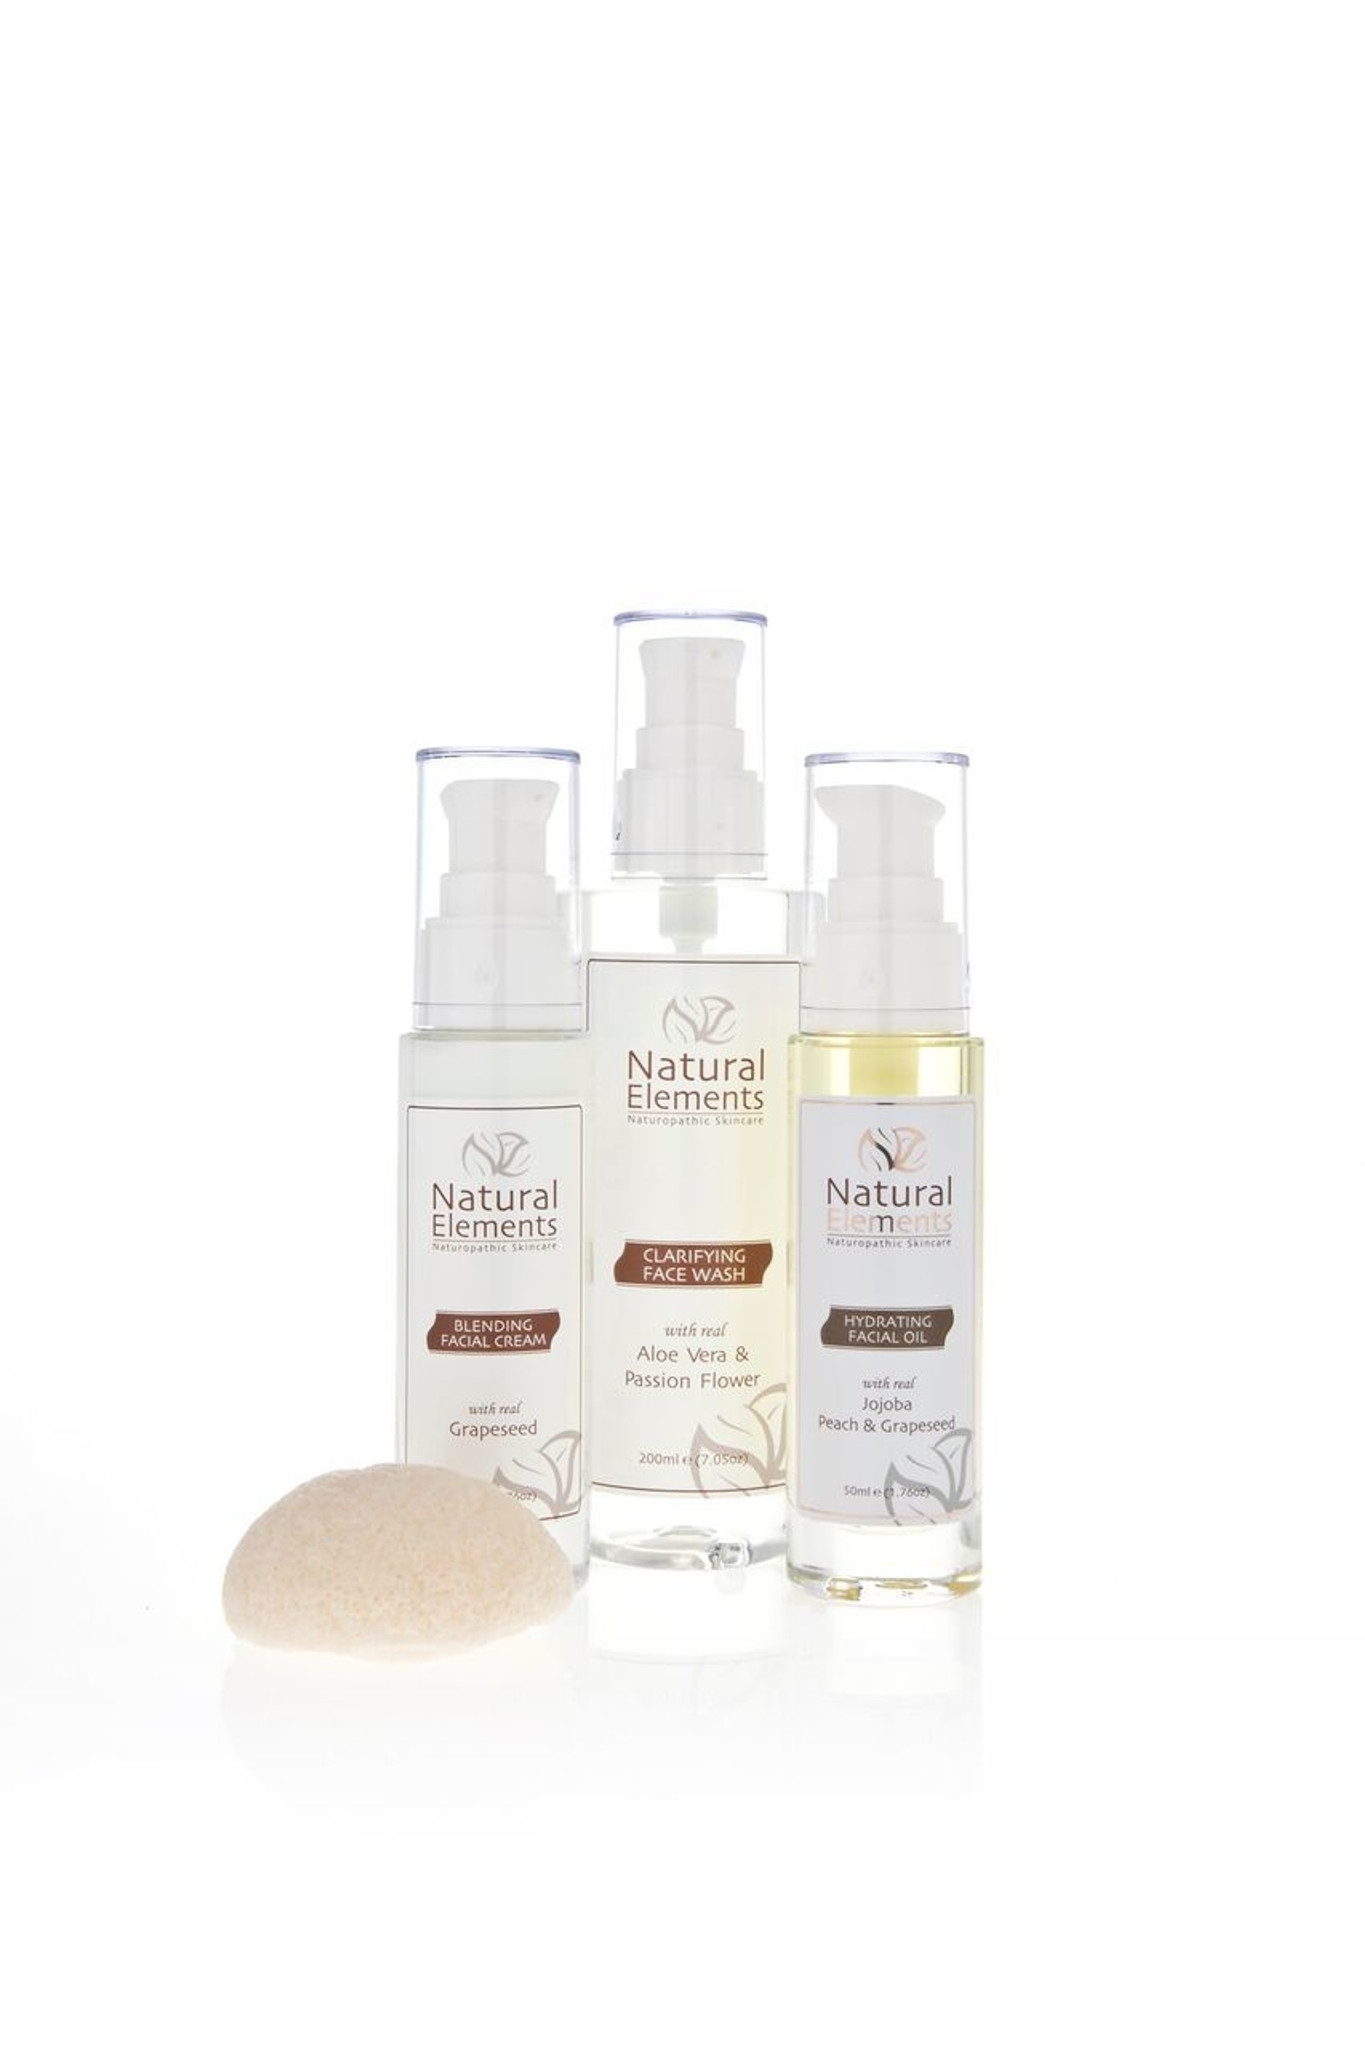 Hydrating WOW Plus Kit for Sensitive or Allergen Prone Skin